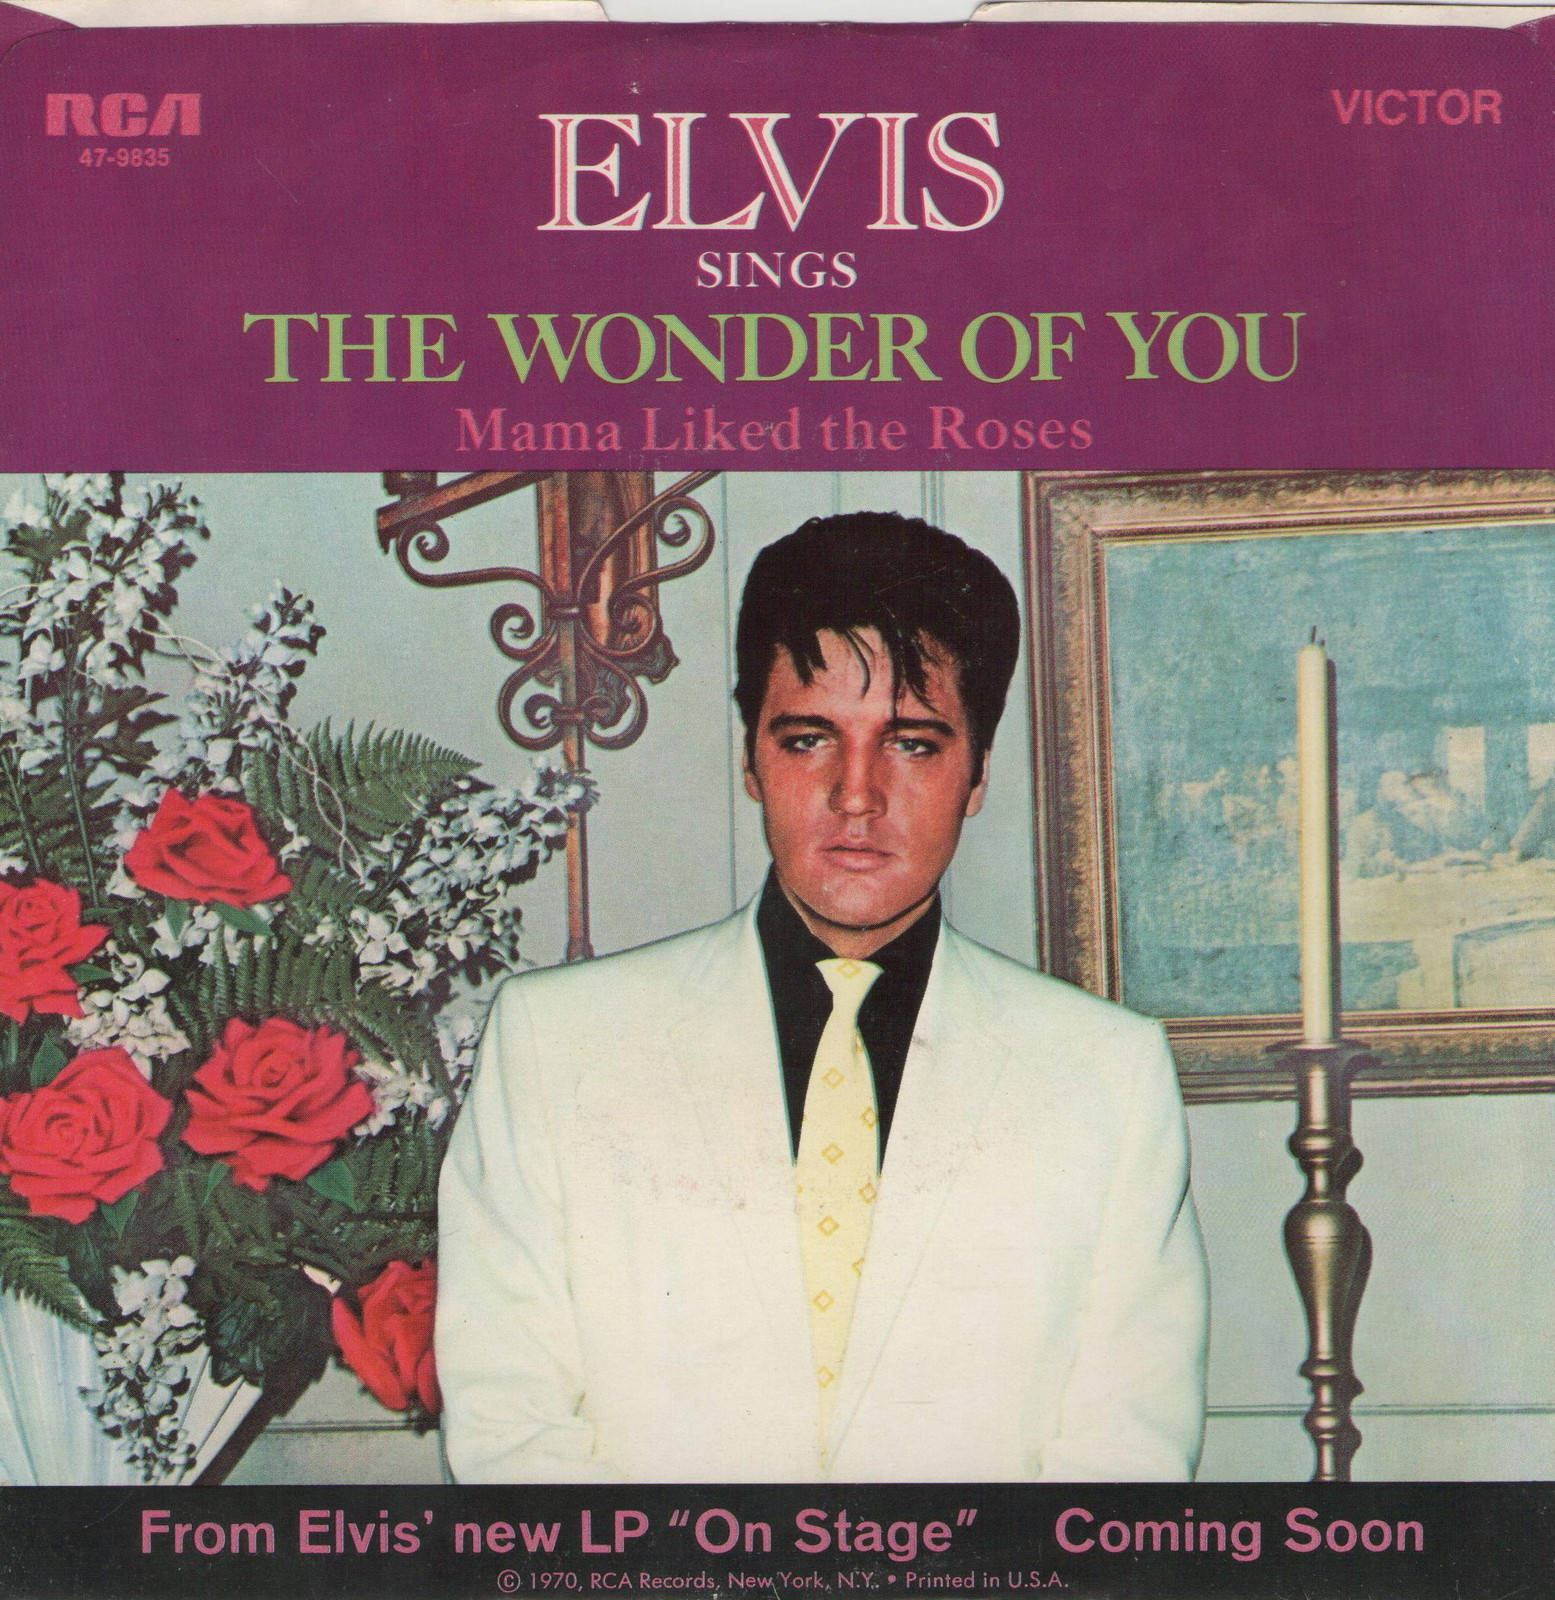 The Wonder Of You / Mama Liked The Roses 47-9835afzo7v